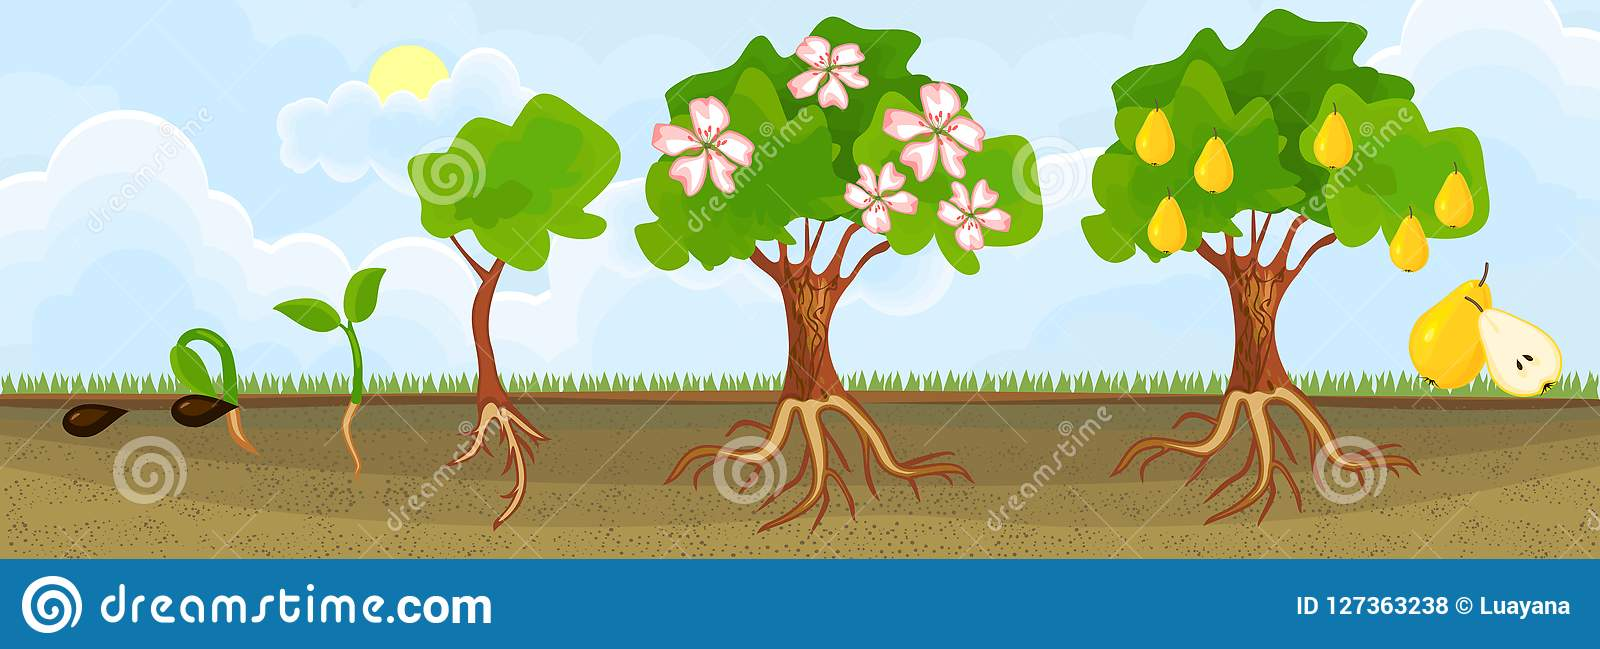 Life Cycle Of Pear Tree Stages Of Growth From Seed And